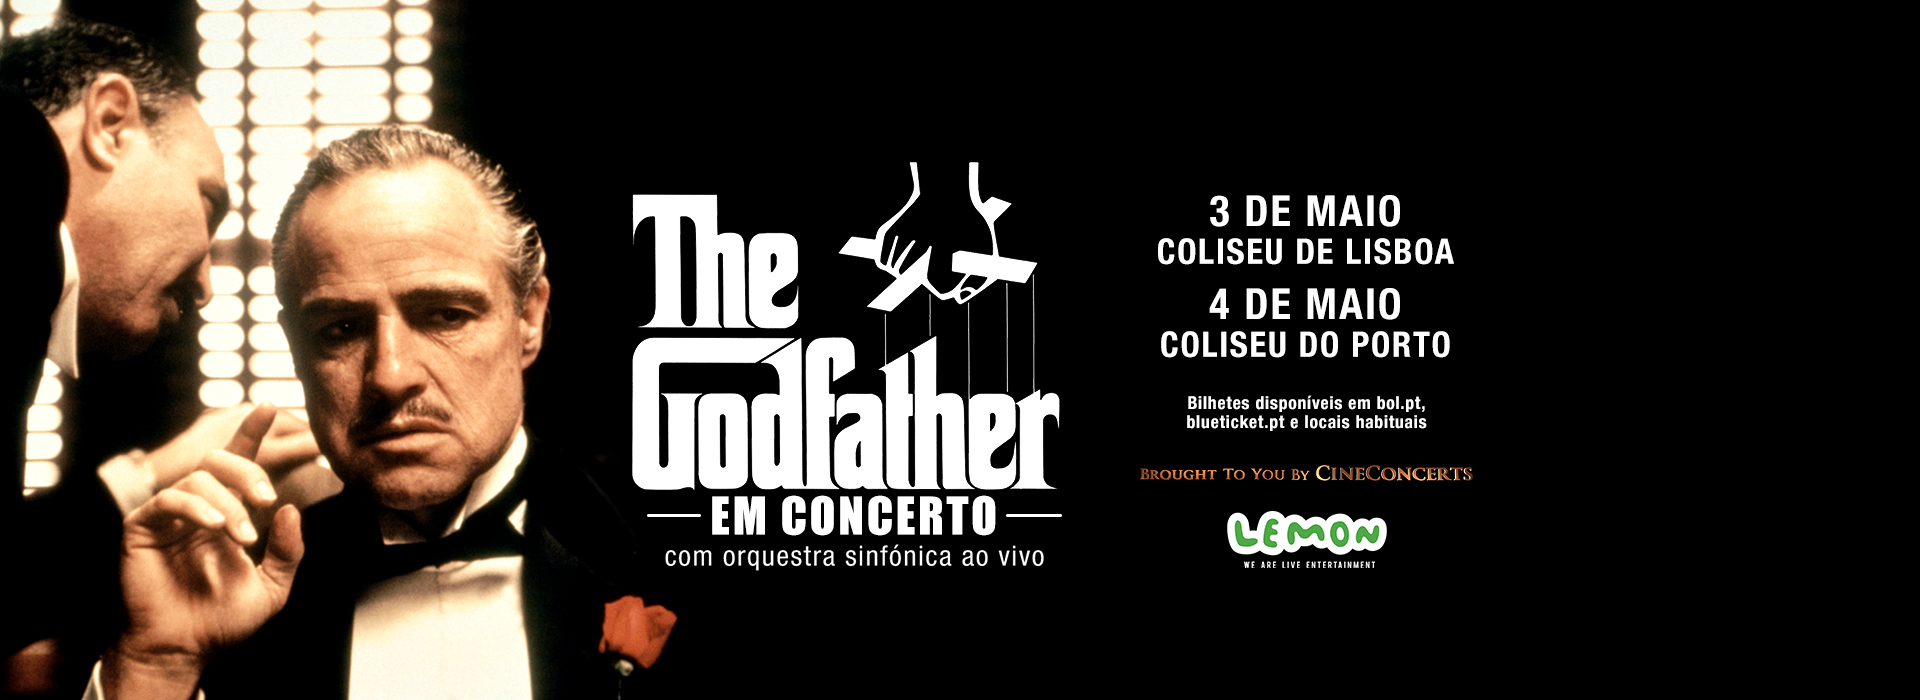 banner_site_1920x700px_godfather (1)